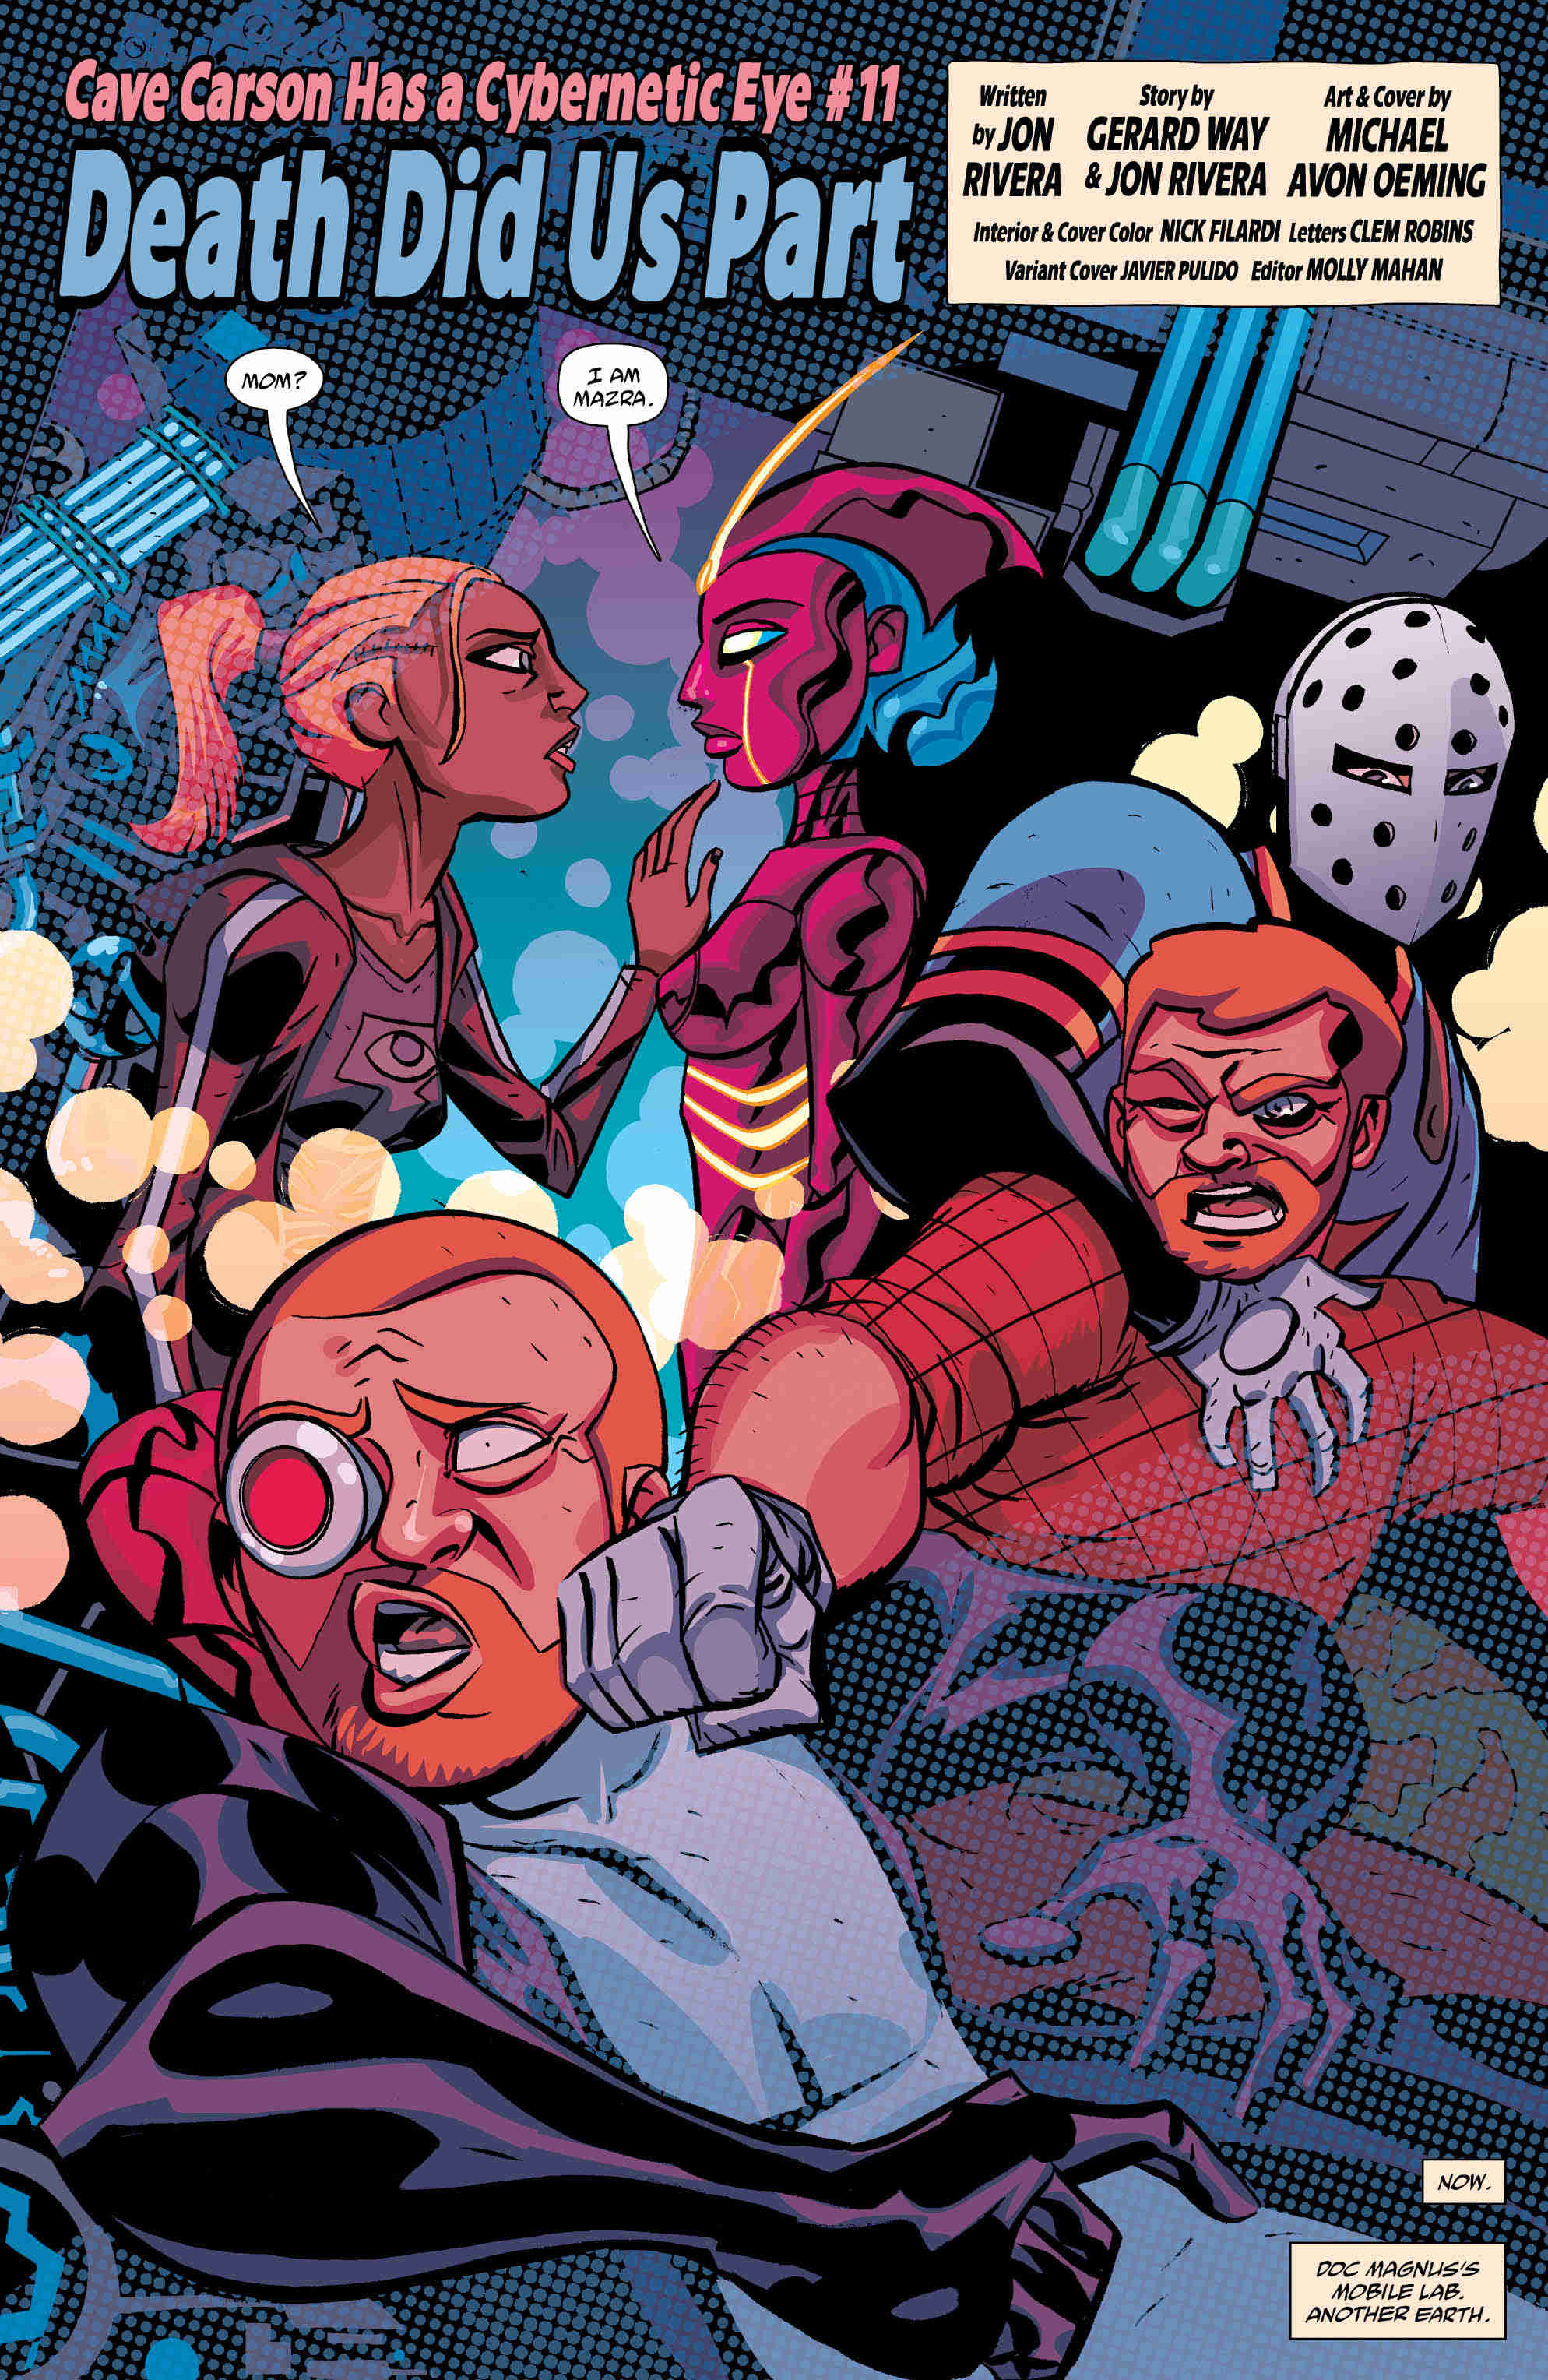 Exclusive Preview: Things Get Weird In Cave Carson Has A Cybernetic Eye #11